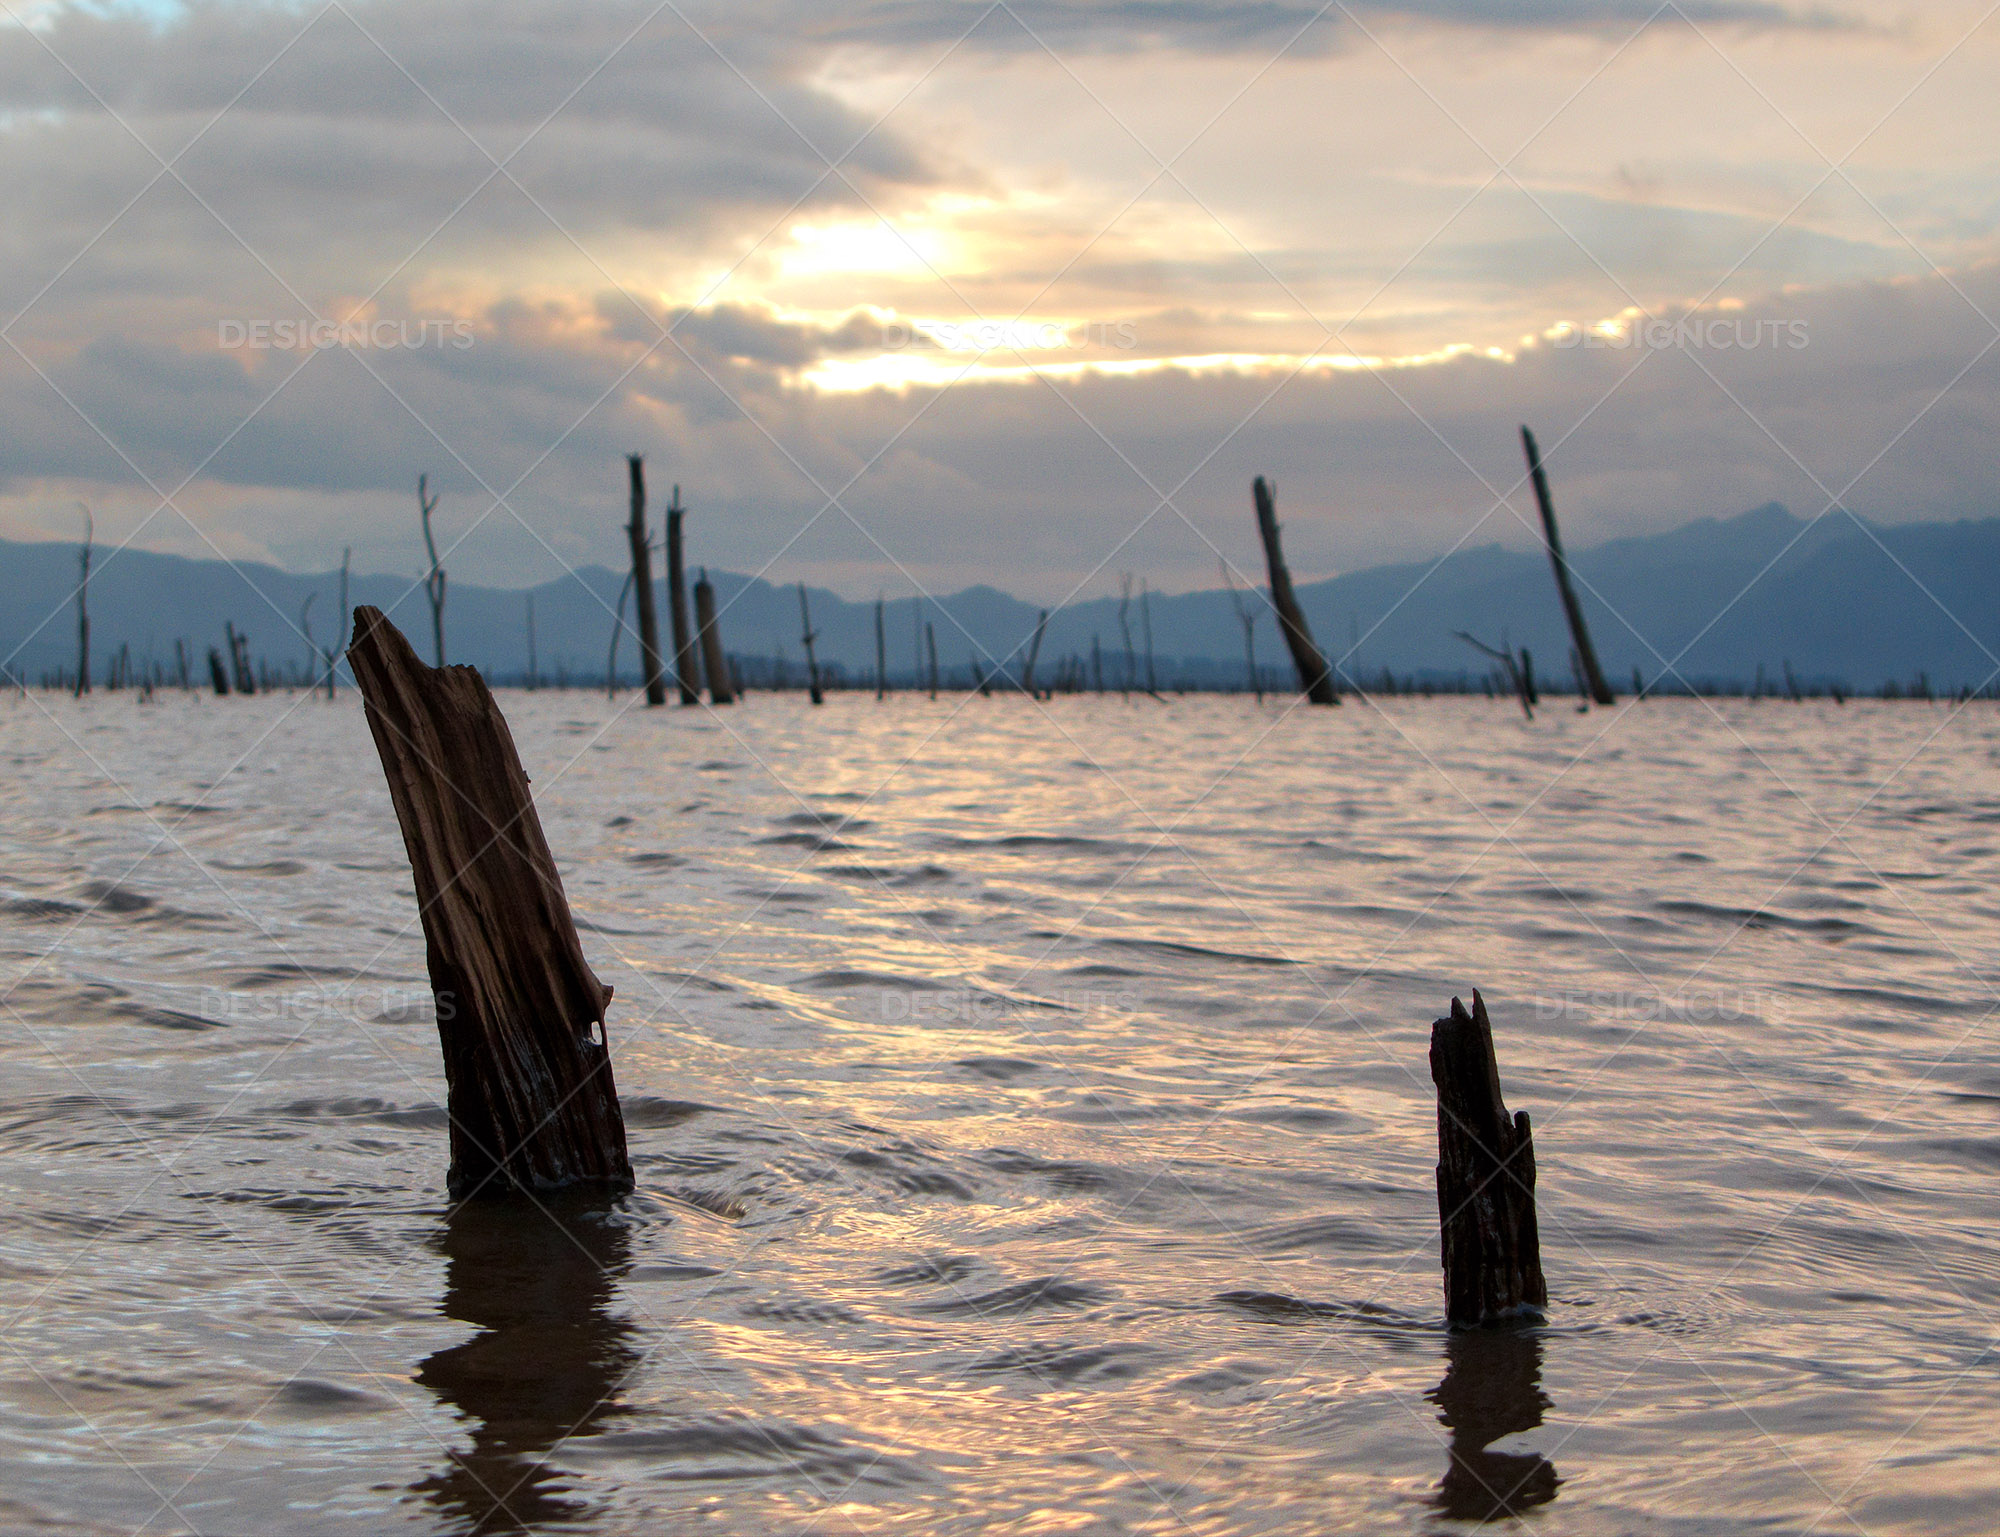 Storm Clouds Over Sunken Trees In Calm Lake